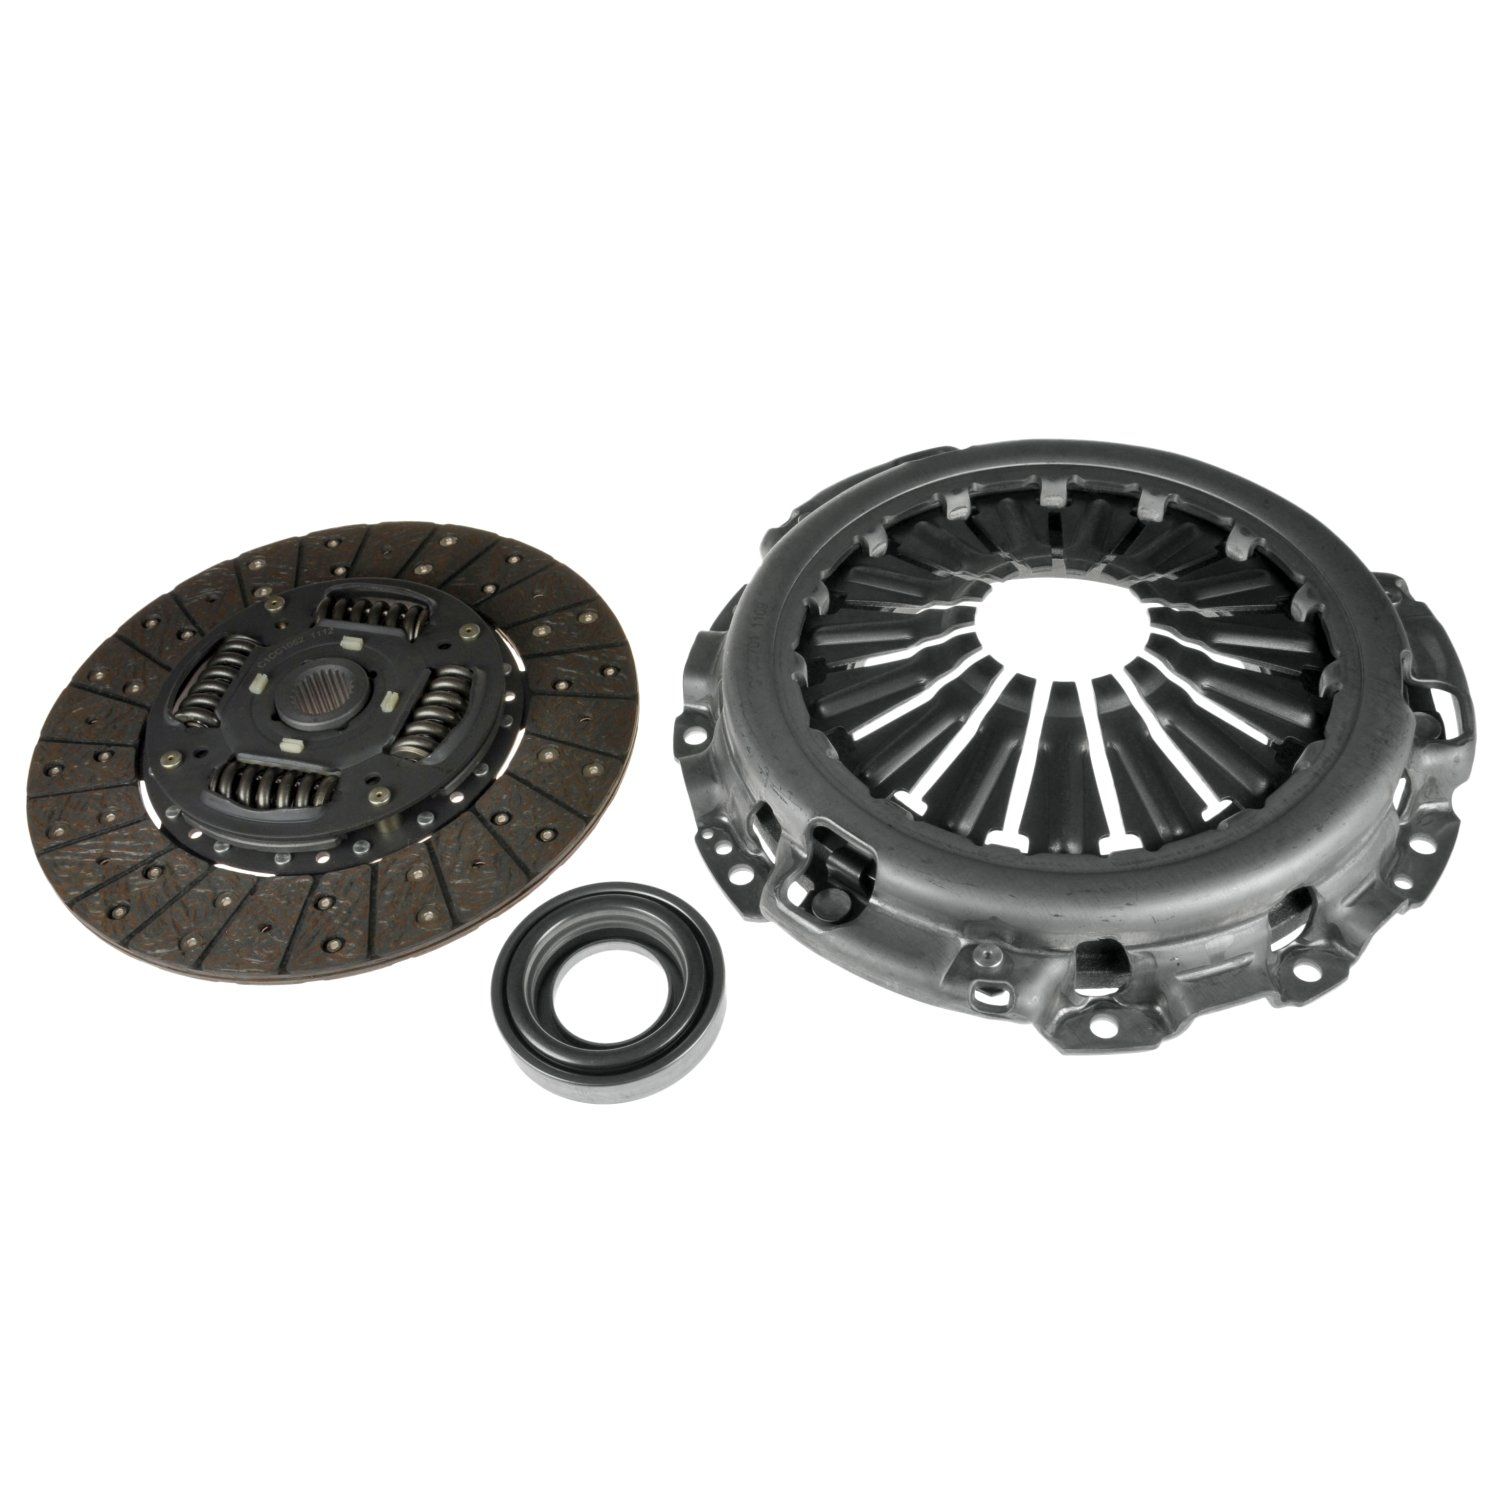 Blue Print ADN130194 clutch kit with clutch release bearing - Pack of 1 Automotive Distributors Limited